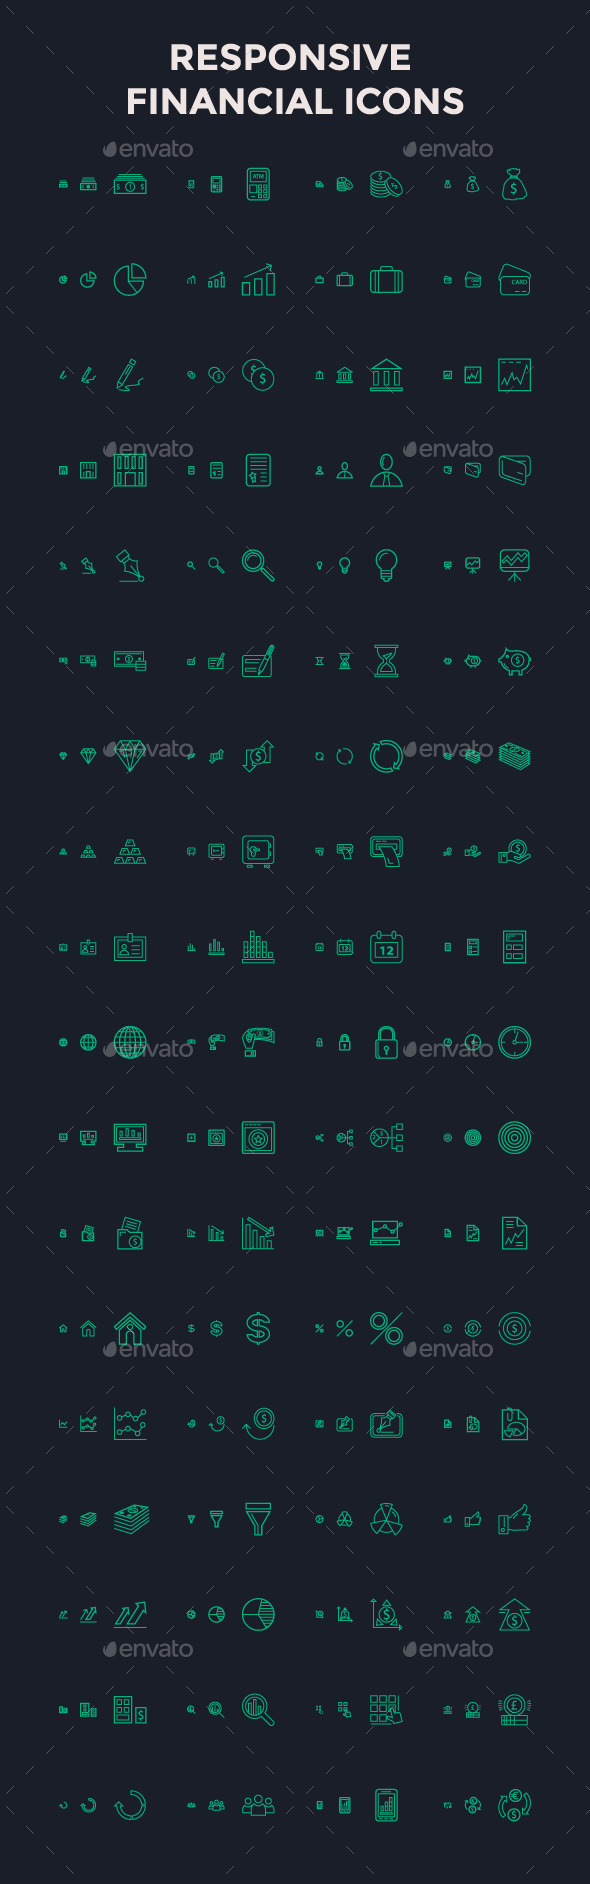 Responsive Financial Vector Icons - Icons